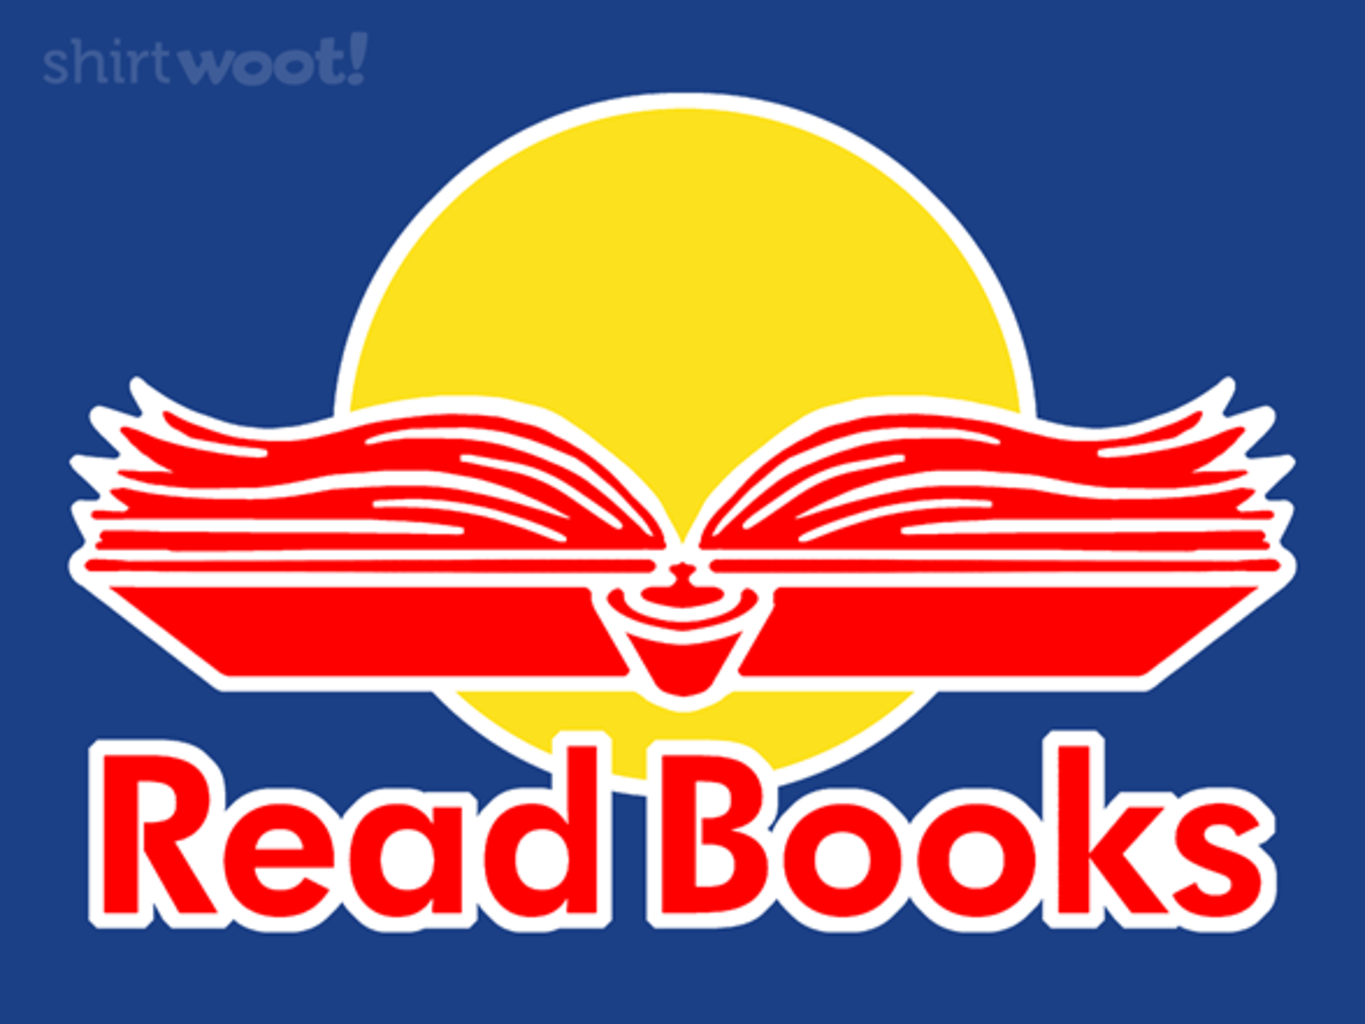 Woot!: Reading Gives You Wings